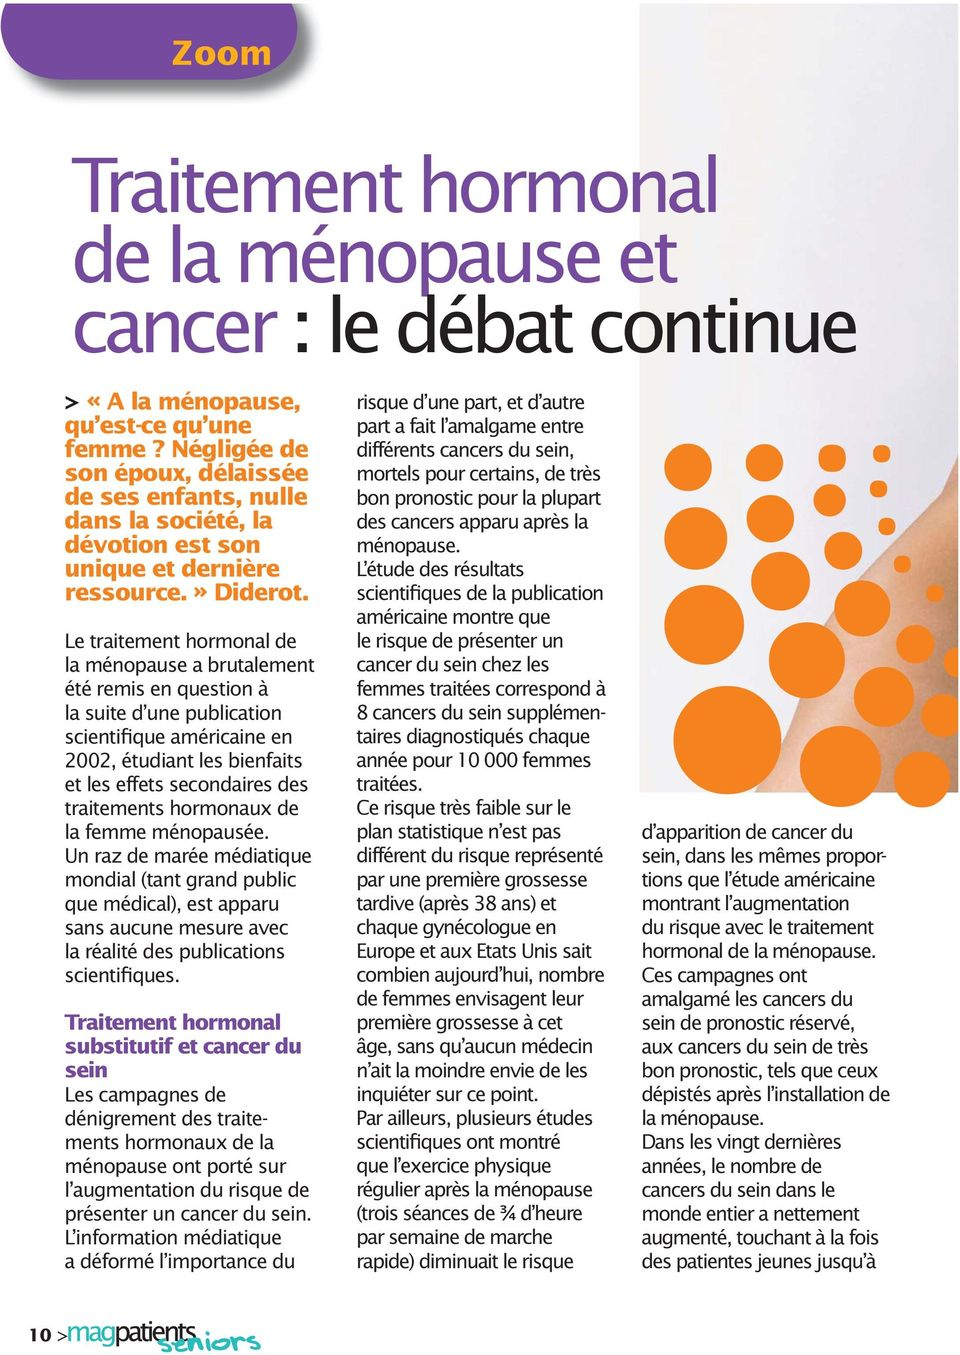 Le traitement hormonal de la ménopause a brutalement été remis en question à la suite d une publication scientifique américaine en 2002, étudiant les bienfaits et les effets secondaires des